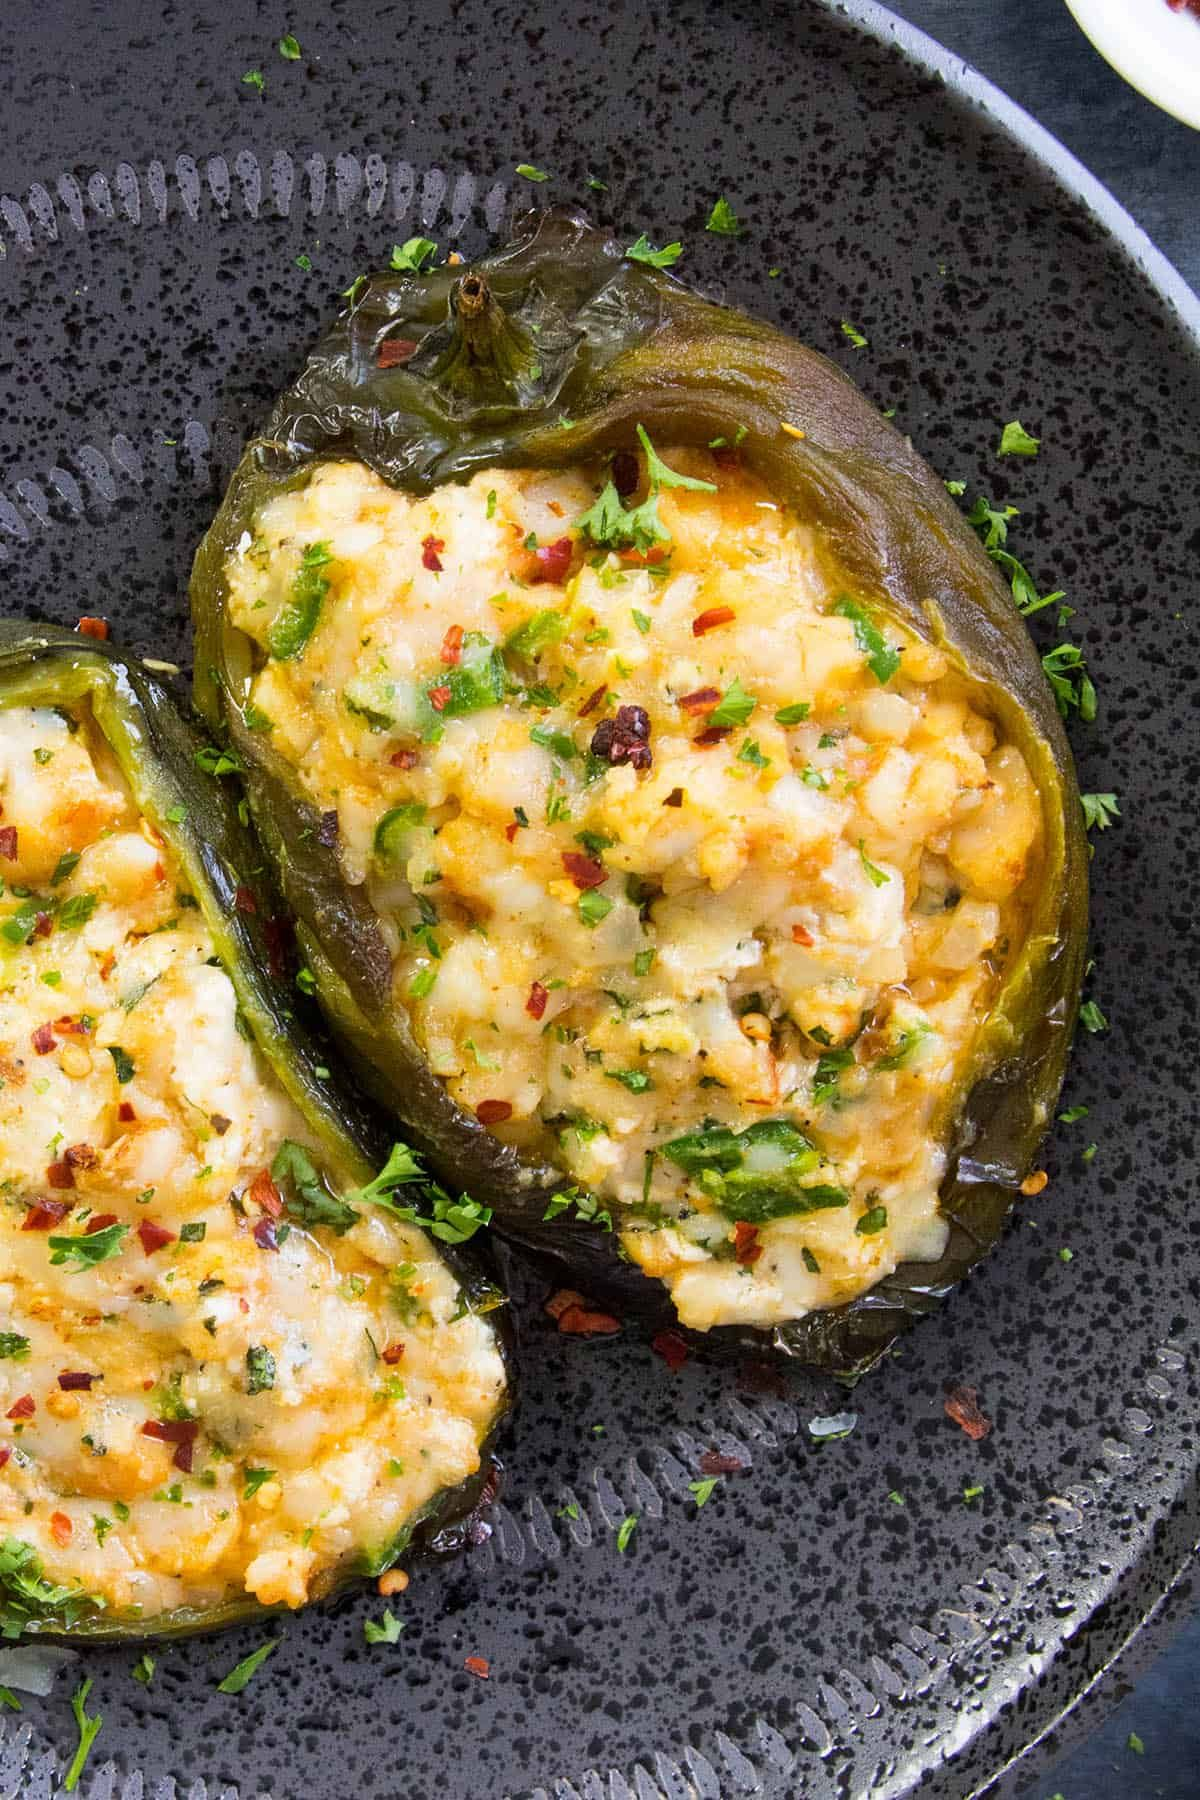 These Stuffed Poblano Peppers Are Nice And Cheese And Ready To Eat Stuffed Peppers Stuffed Poblano Peppers Veggie Dishes